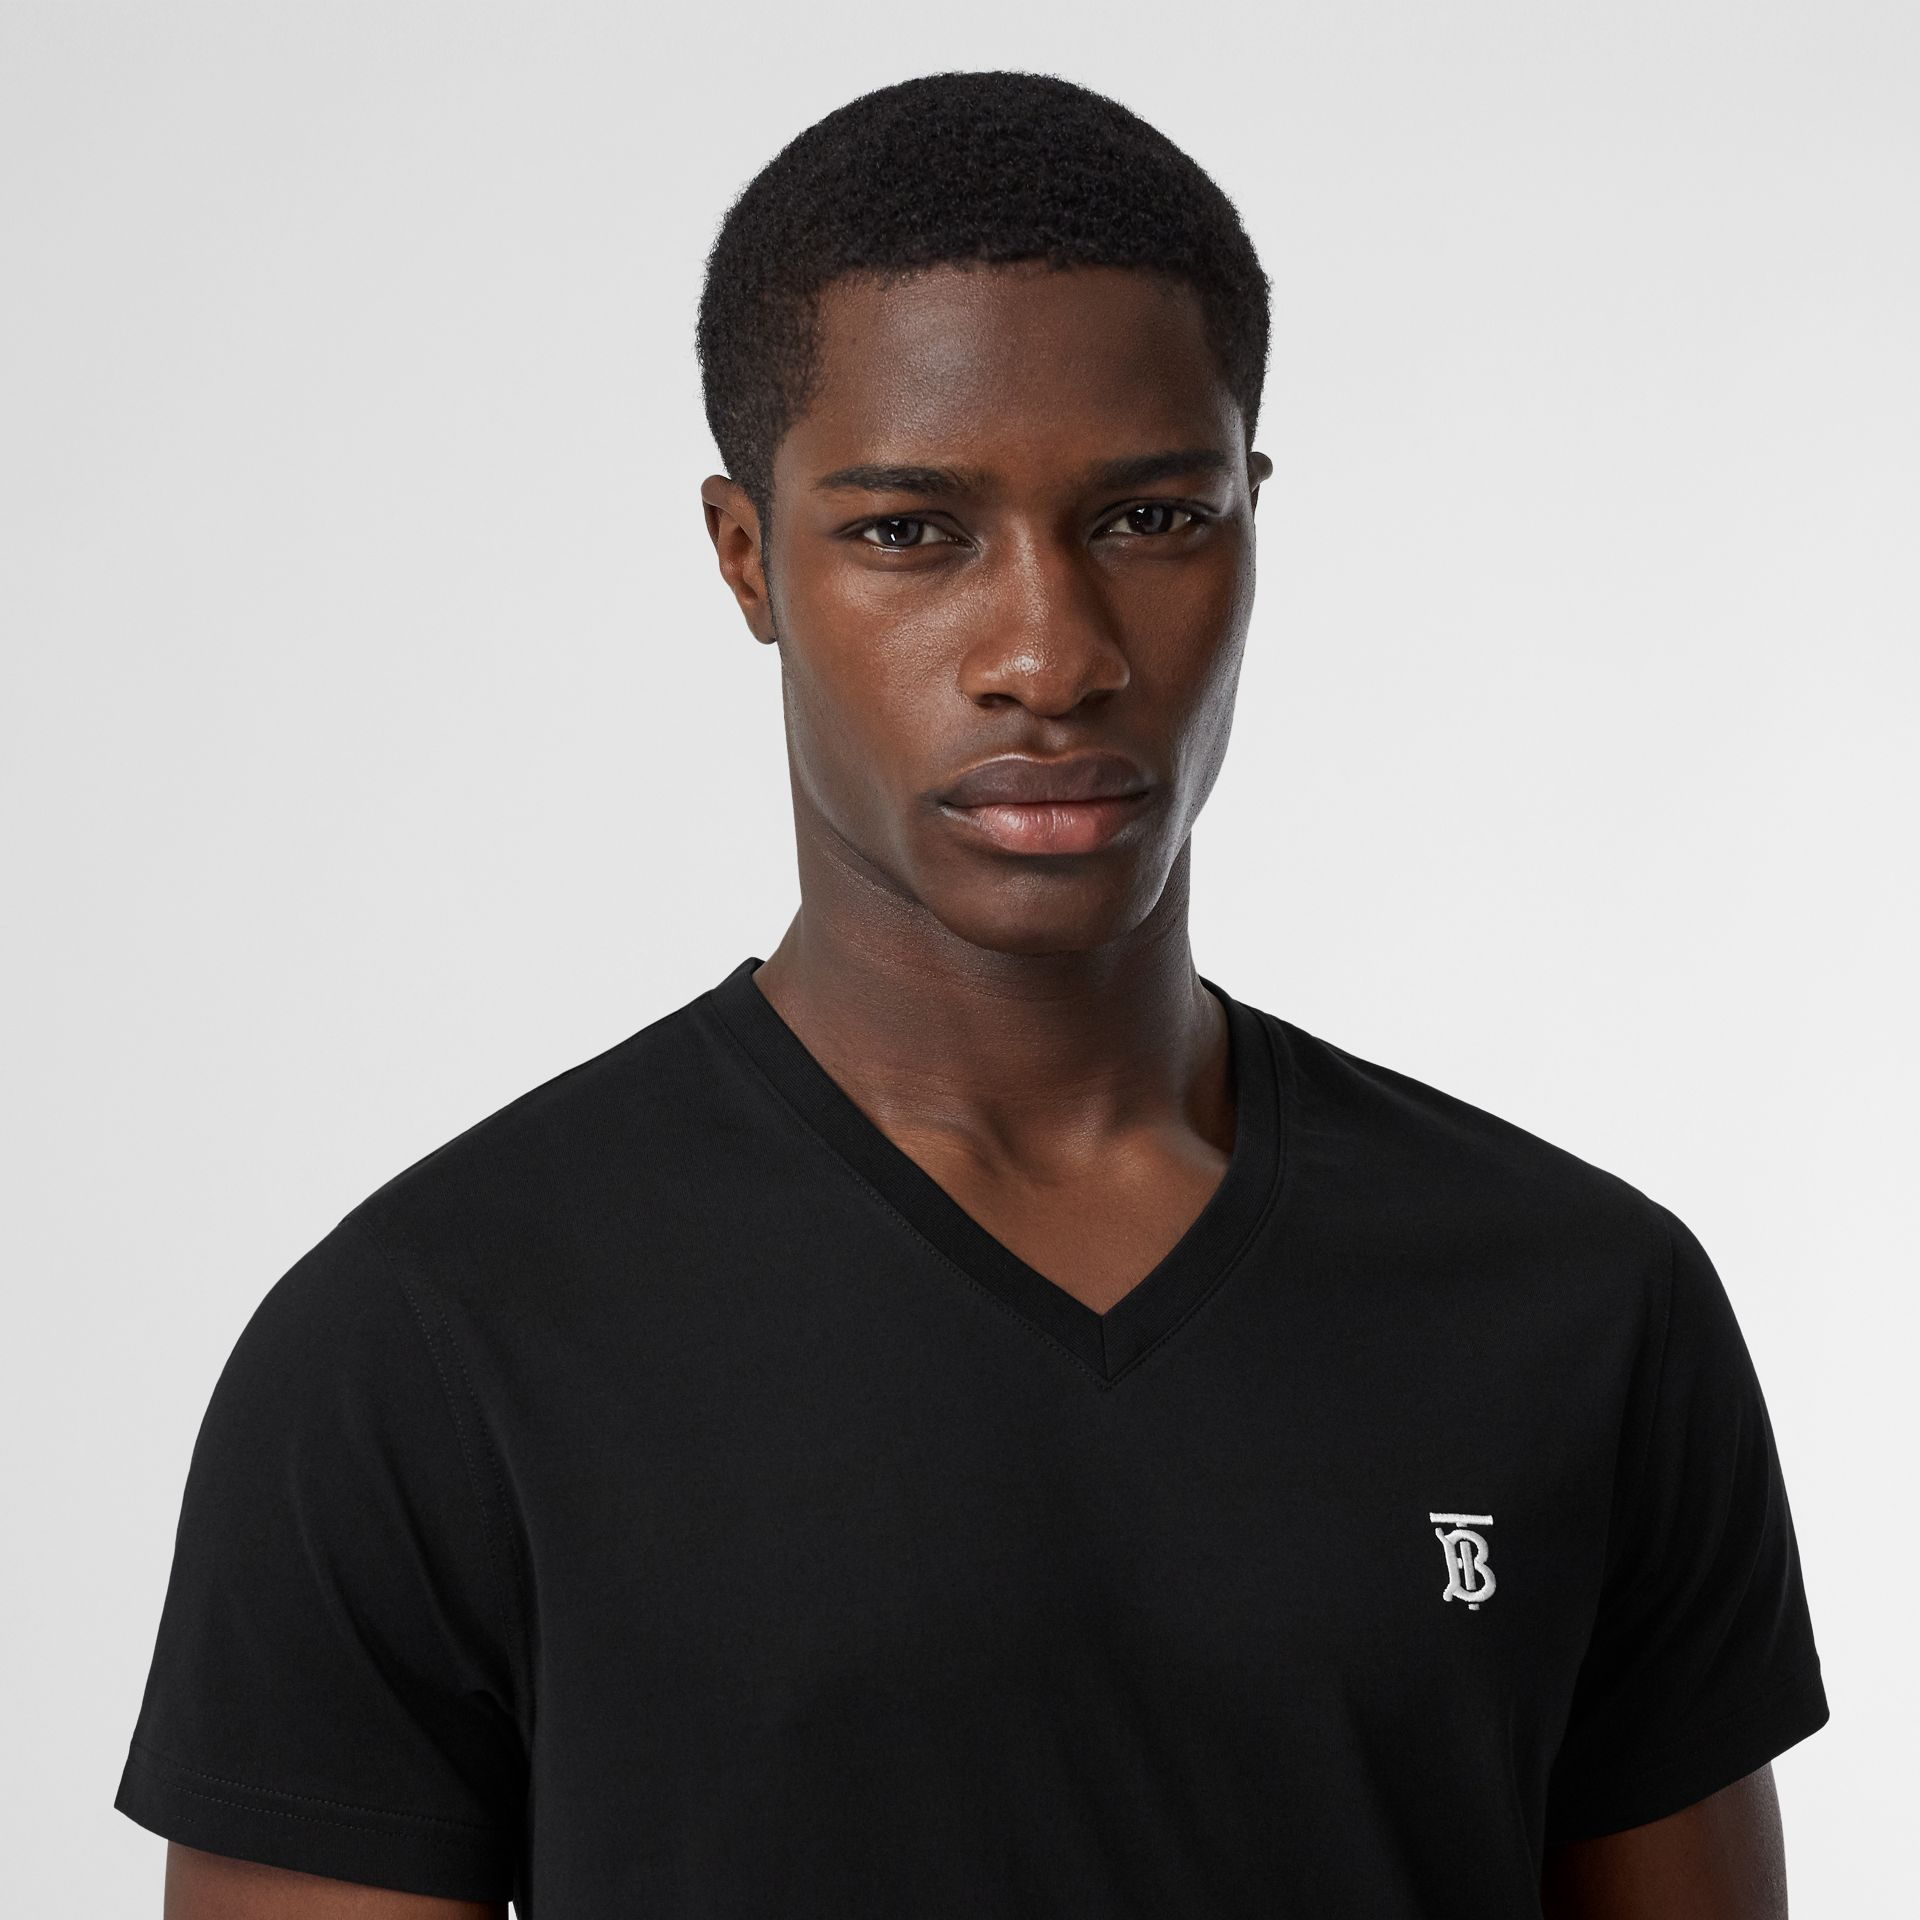 Monogram Motif Cotton V-neck T-shirt in Black - Men | Burberry United Kingdom - gallery image 1